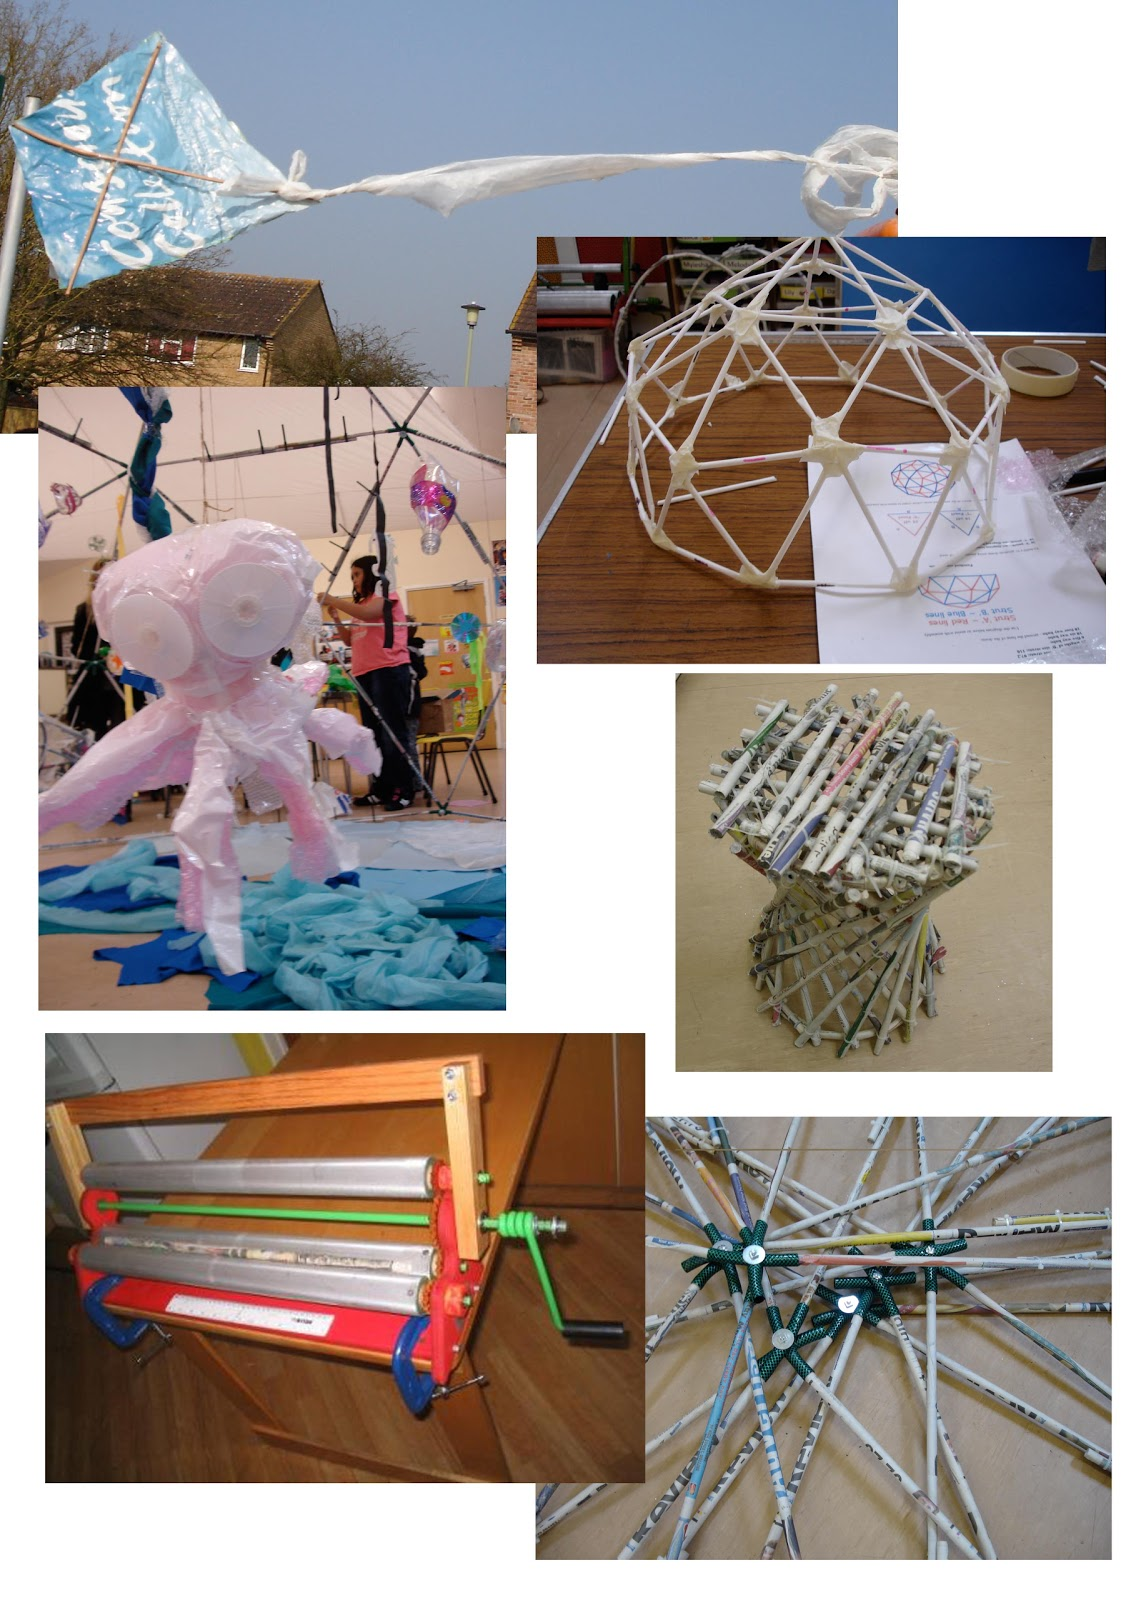 Creative workshops using recycled materials shakespeare for Creative art using waste materials